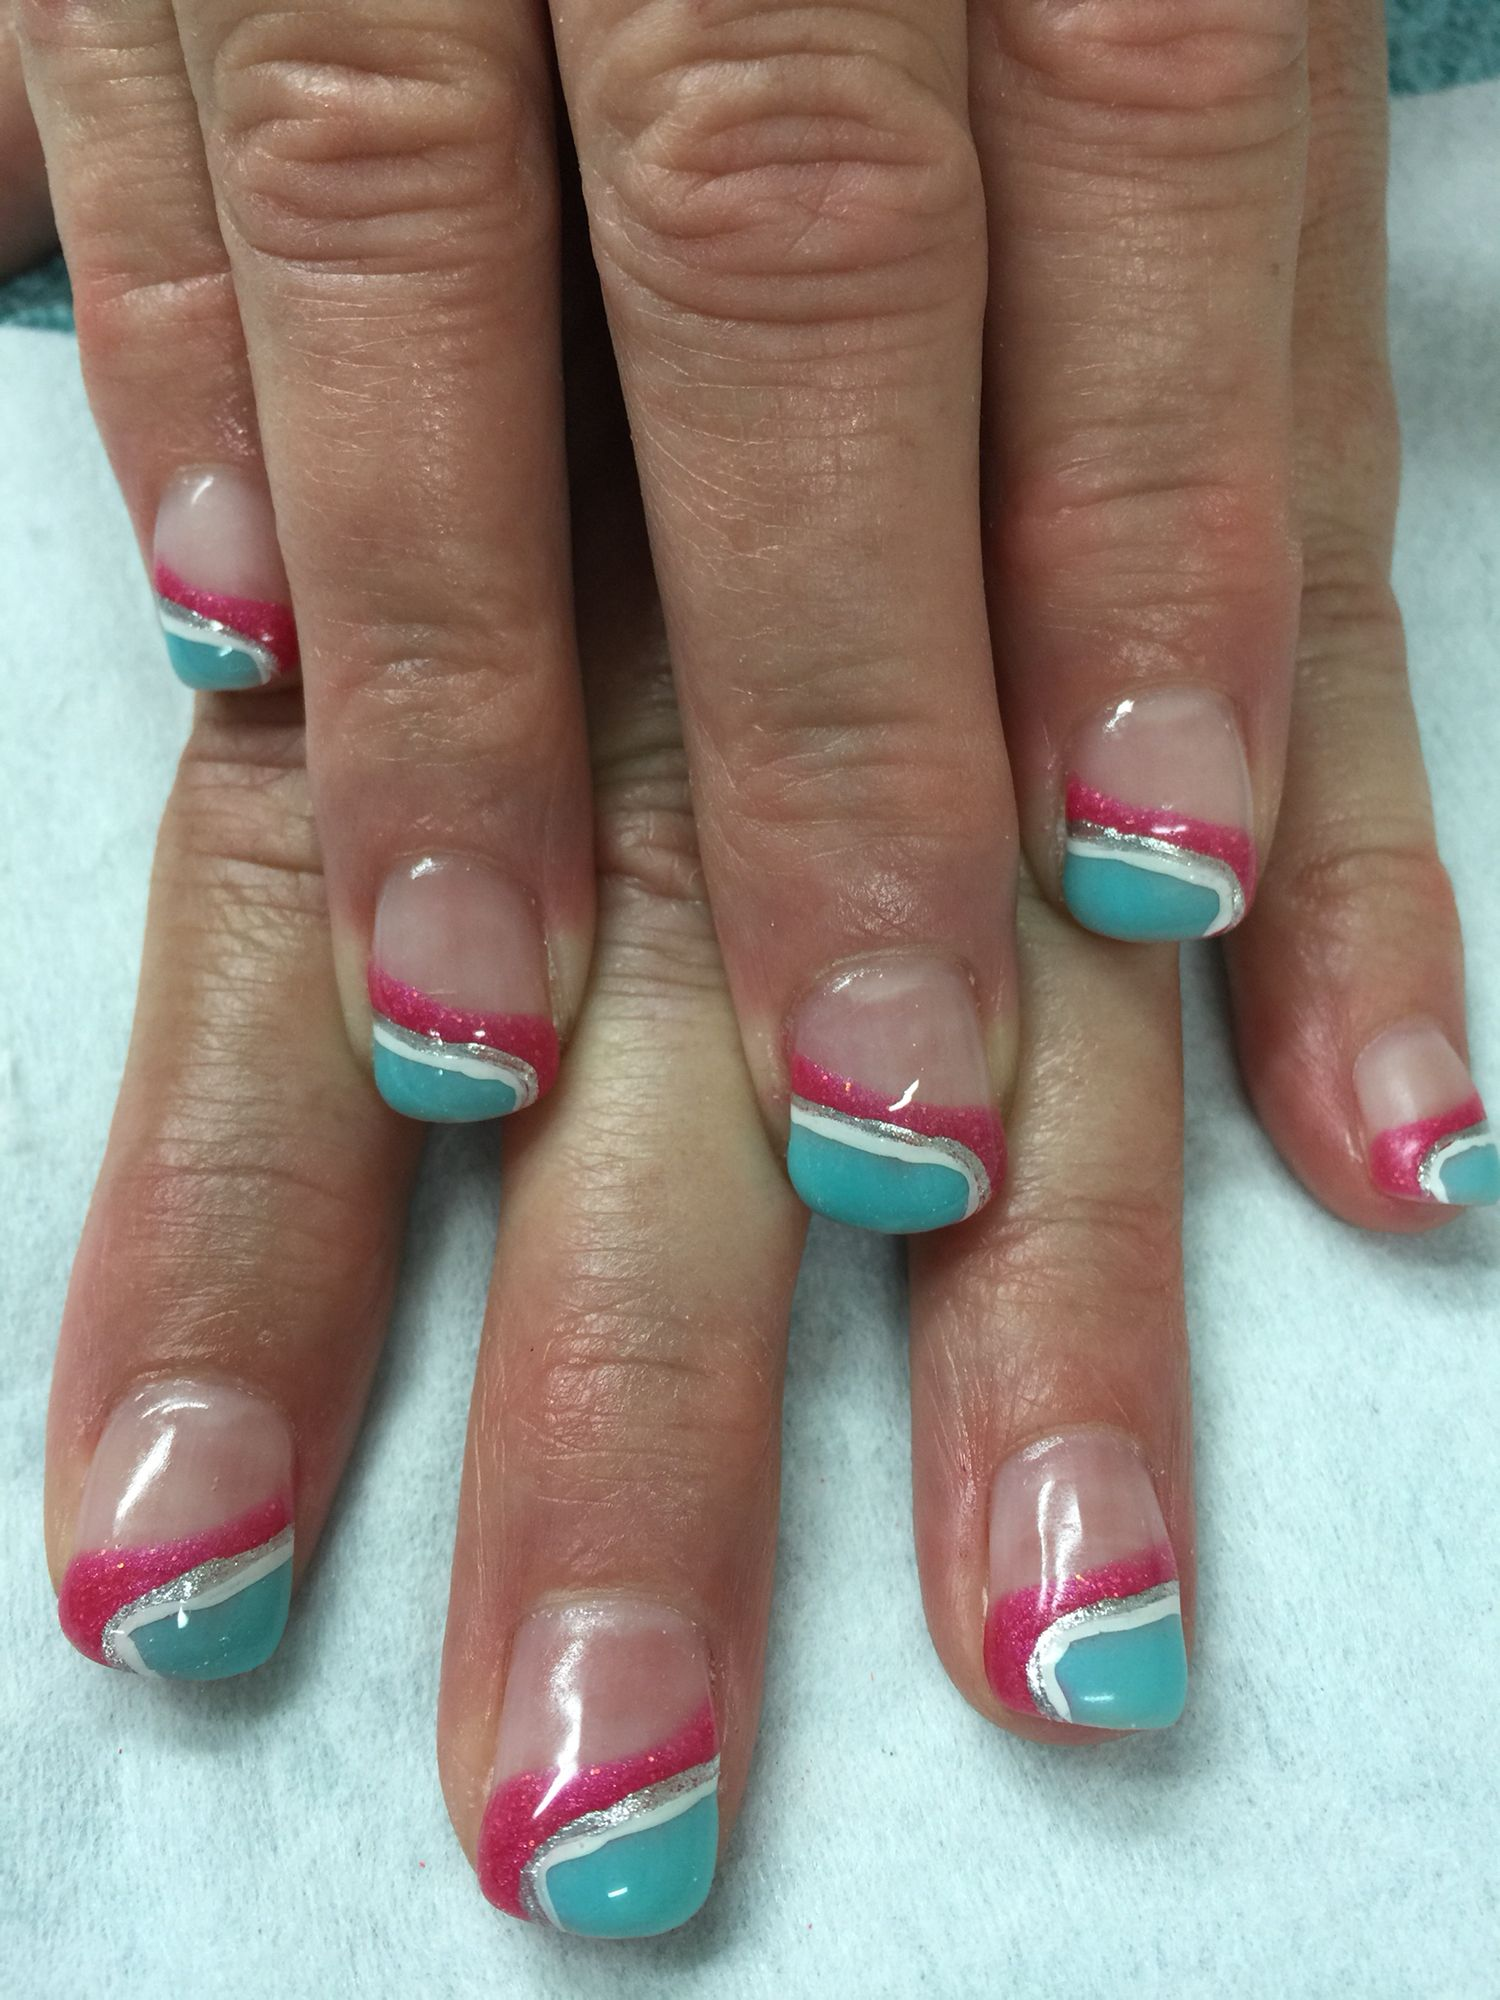 Swirled sloped pink & mint French gel nails. All done with non-toxic ...